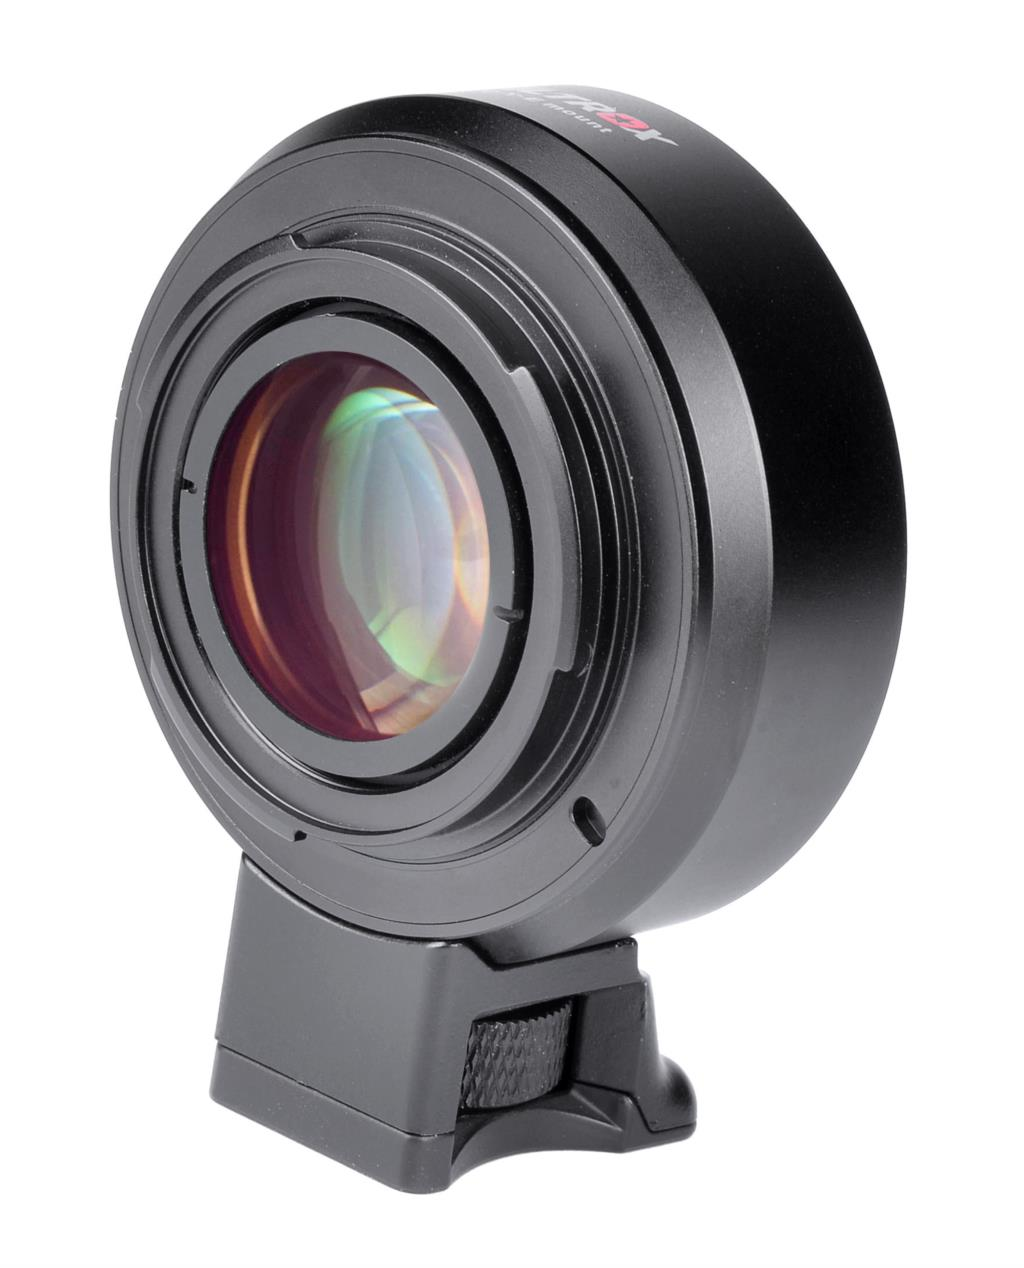 Contax CY lens to E mount Focal Reducer Speed Booster adapter ring for A7 A7s A6000 A3000 3N 6 5R 5T camera